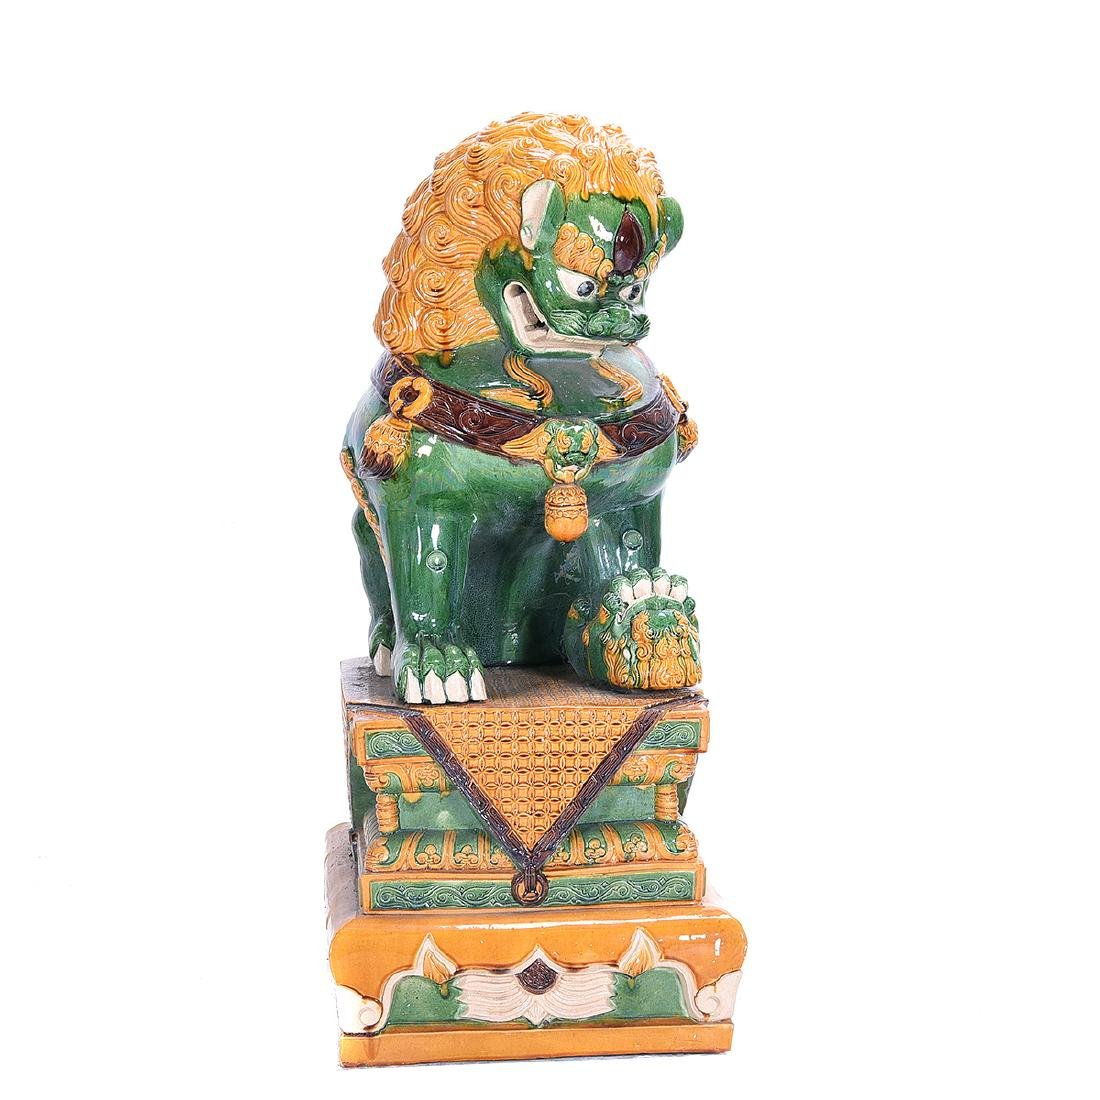 Pair of Massive Glazed Ceramic Guardian Lions - 3